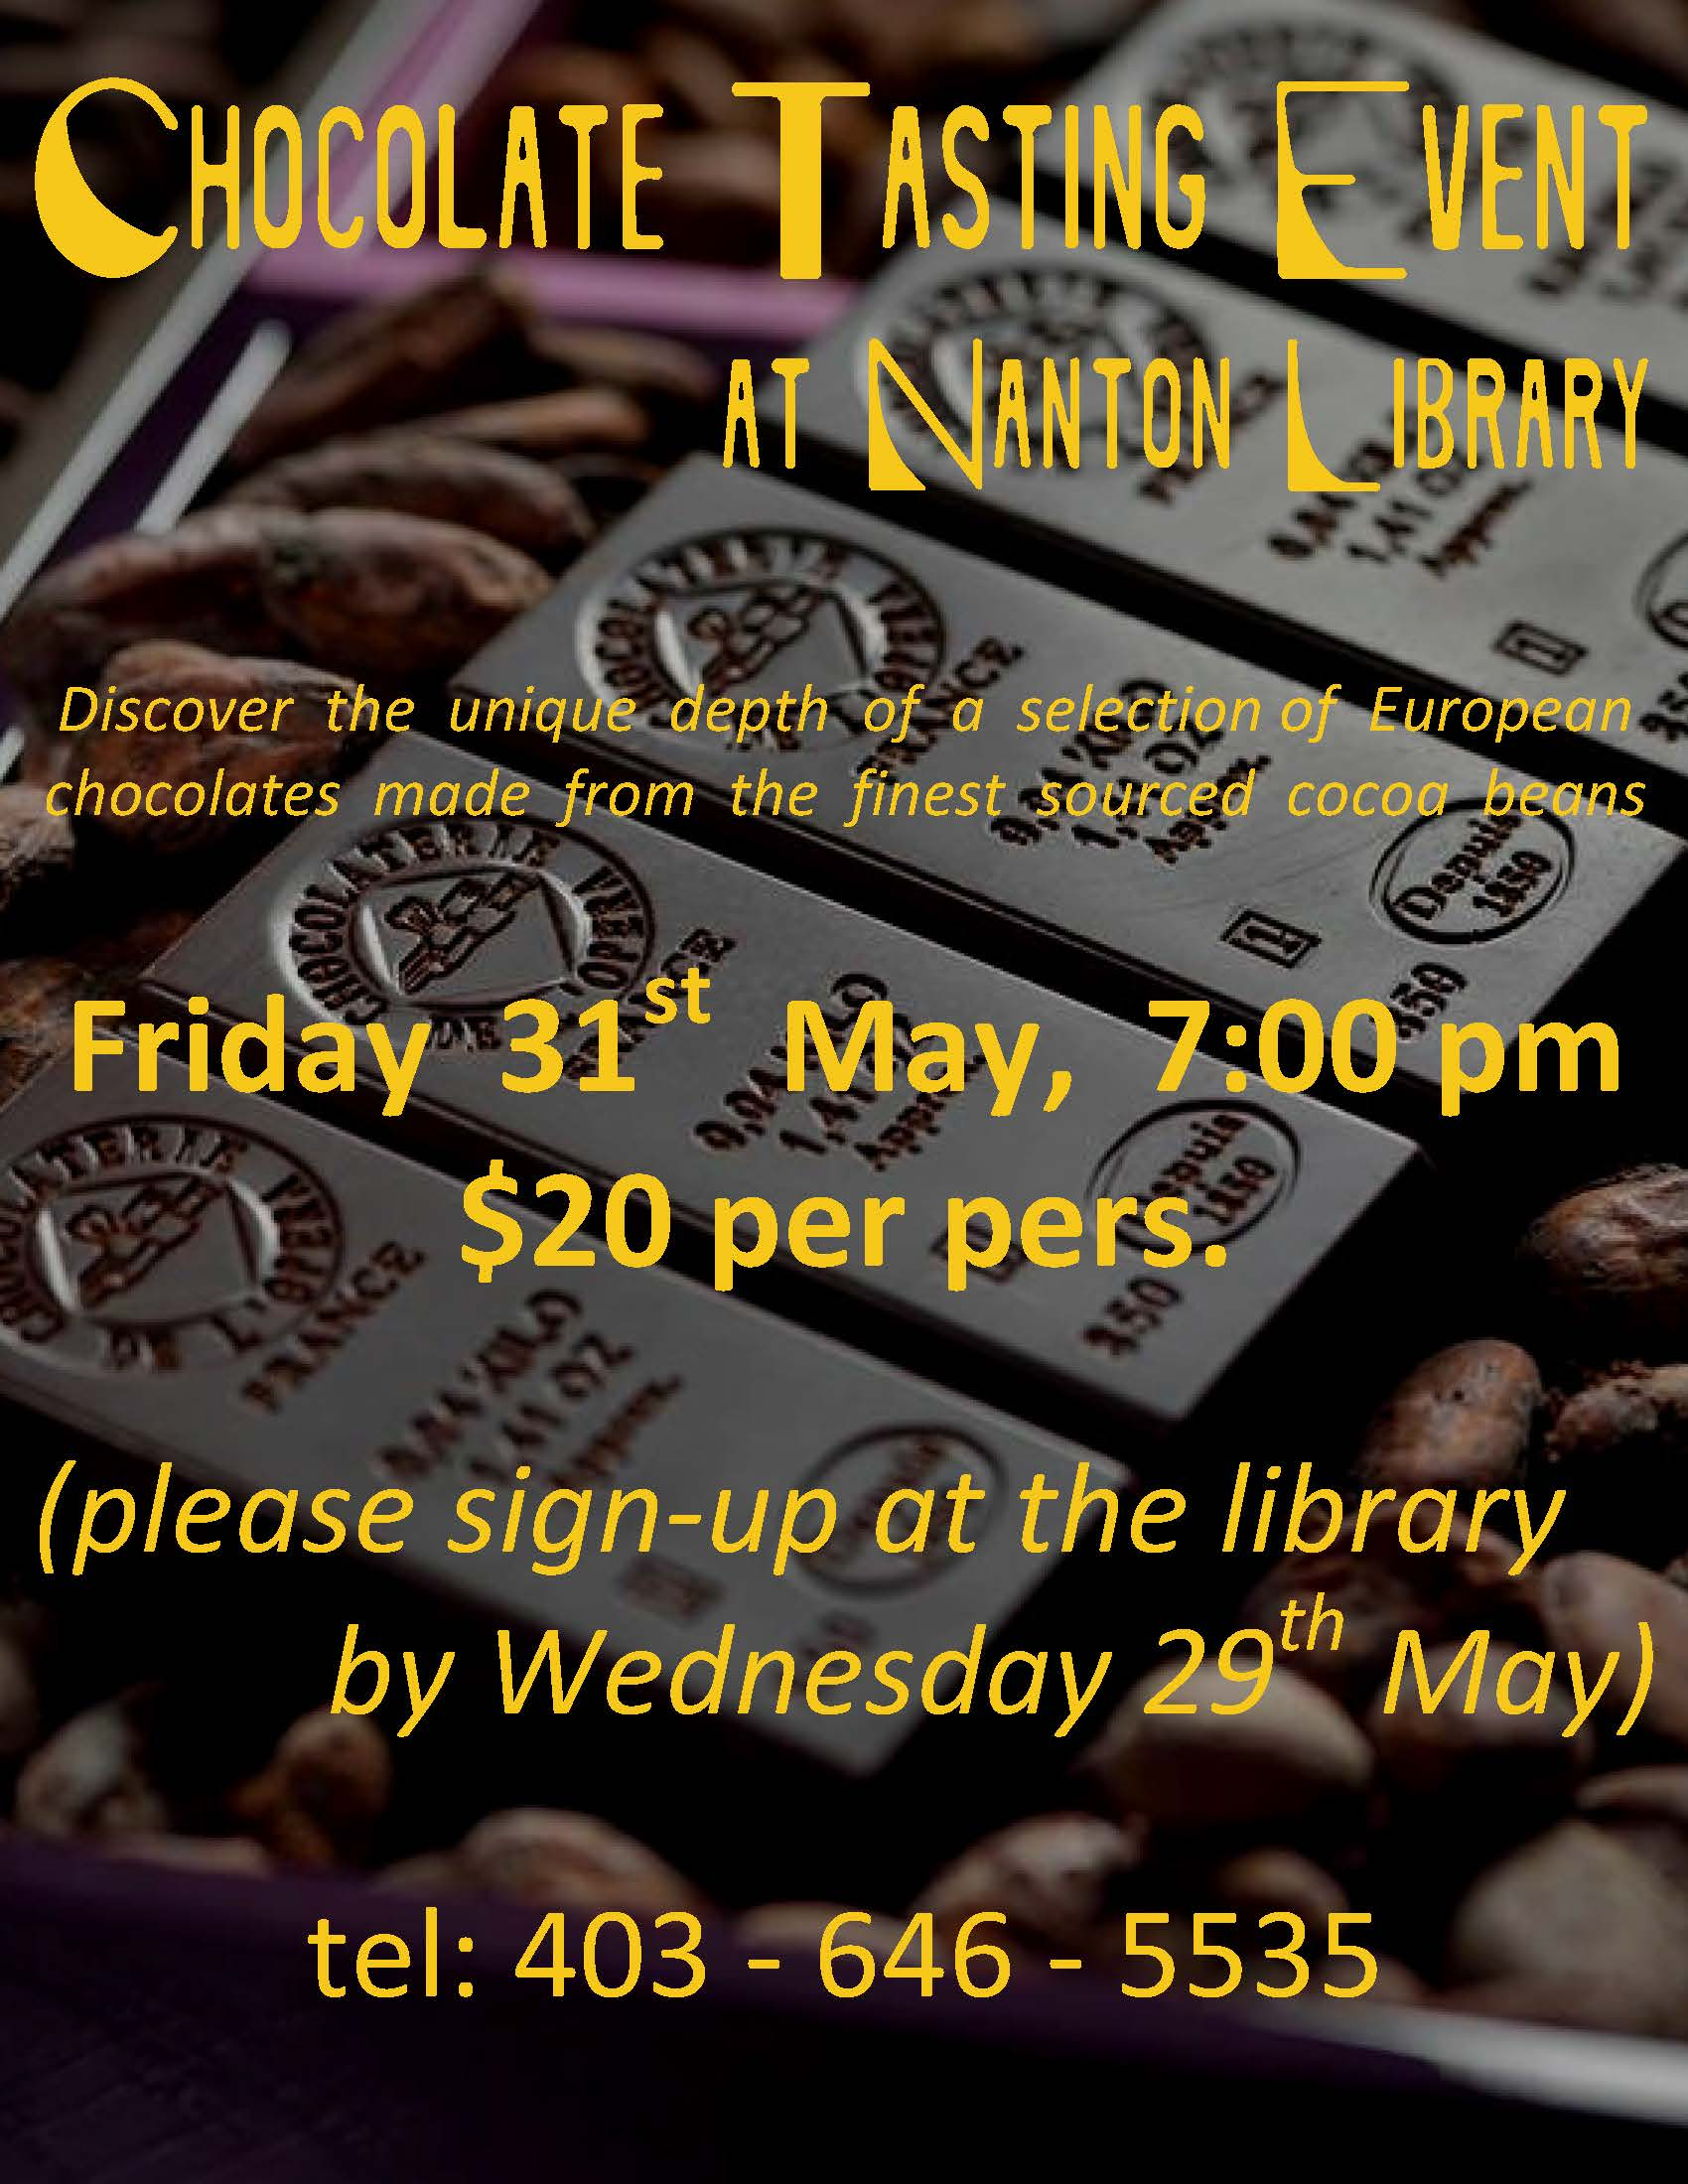 Chocolate tasting at the library on Friday, May 31, at 7:00pm!  $20 per person.  RSVP by May 29 by calling 403-646-5535